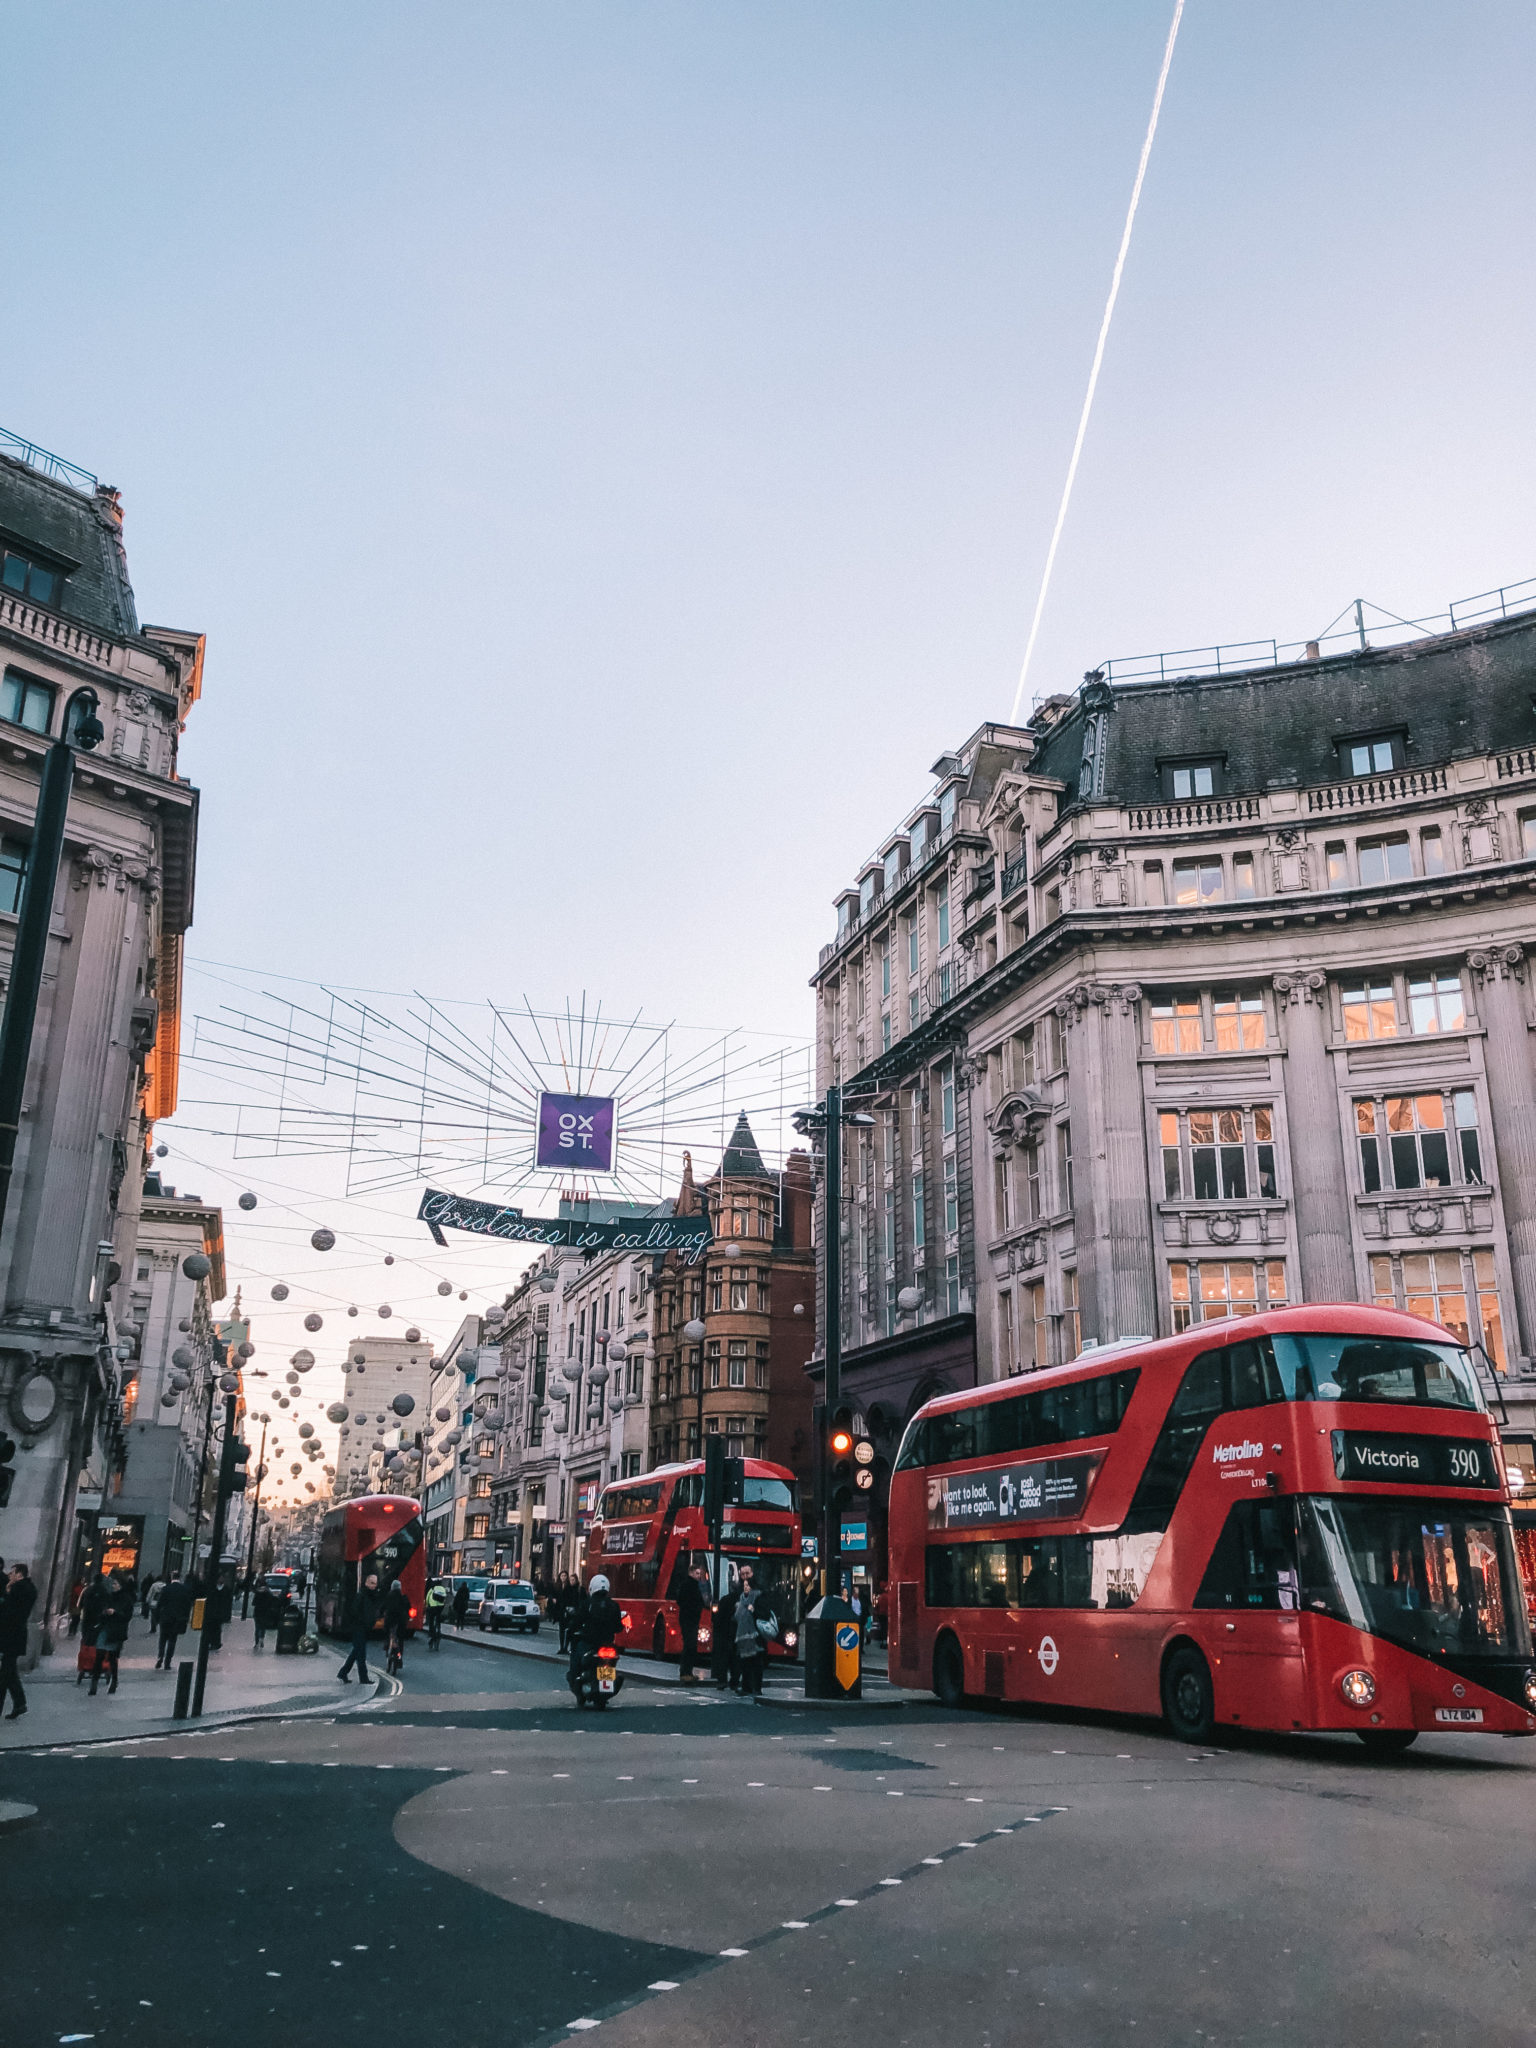 London at Christmas | WORLD OF WANDERLUST